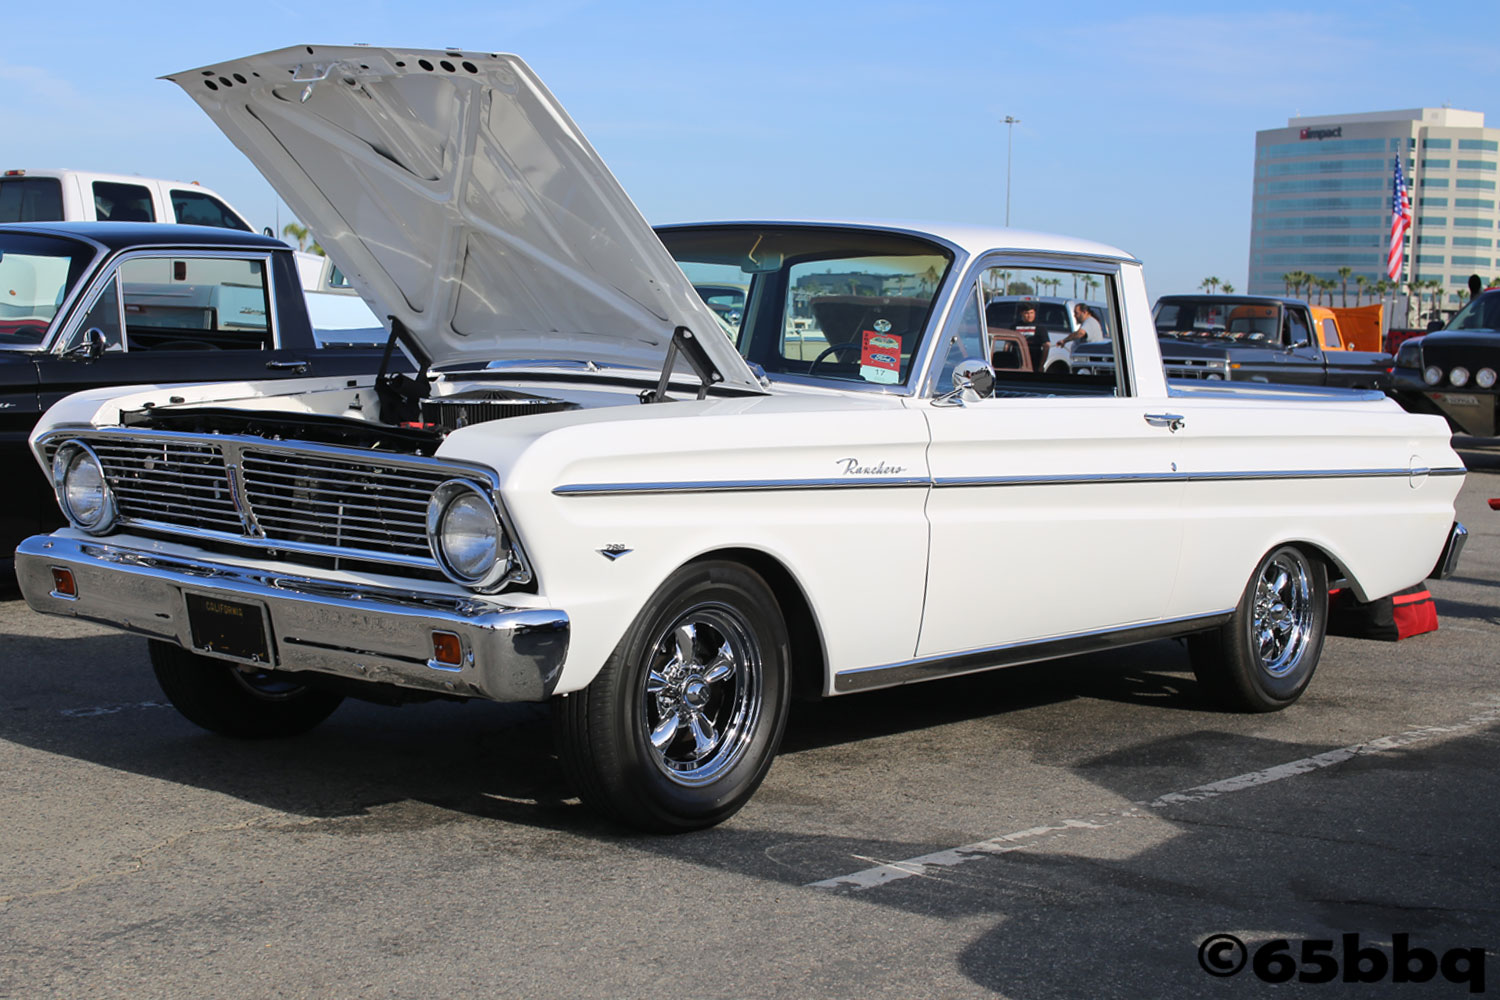 fabulous-fords-forever-april-2019-65bbq-r96.jpg